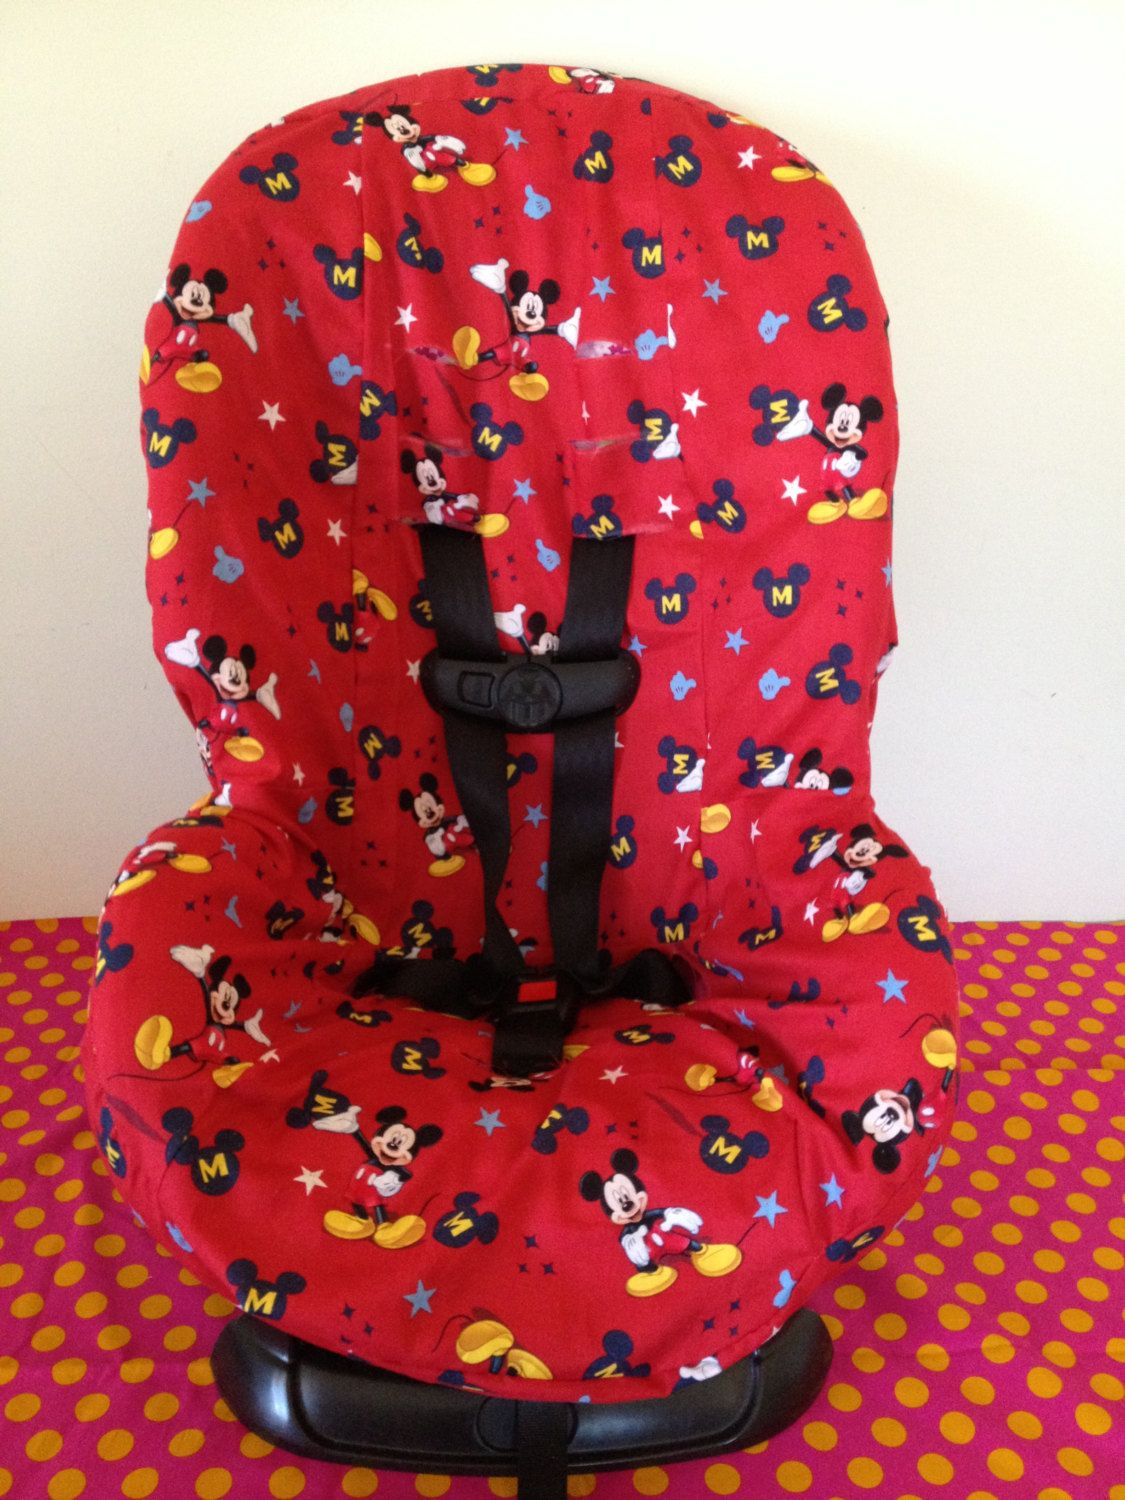 TODDLER carseat cover with Mickey Mouse fabric Carseat